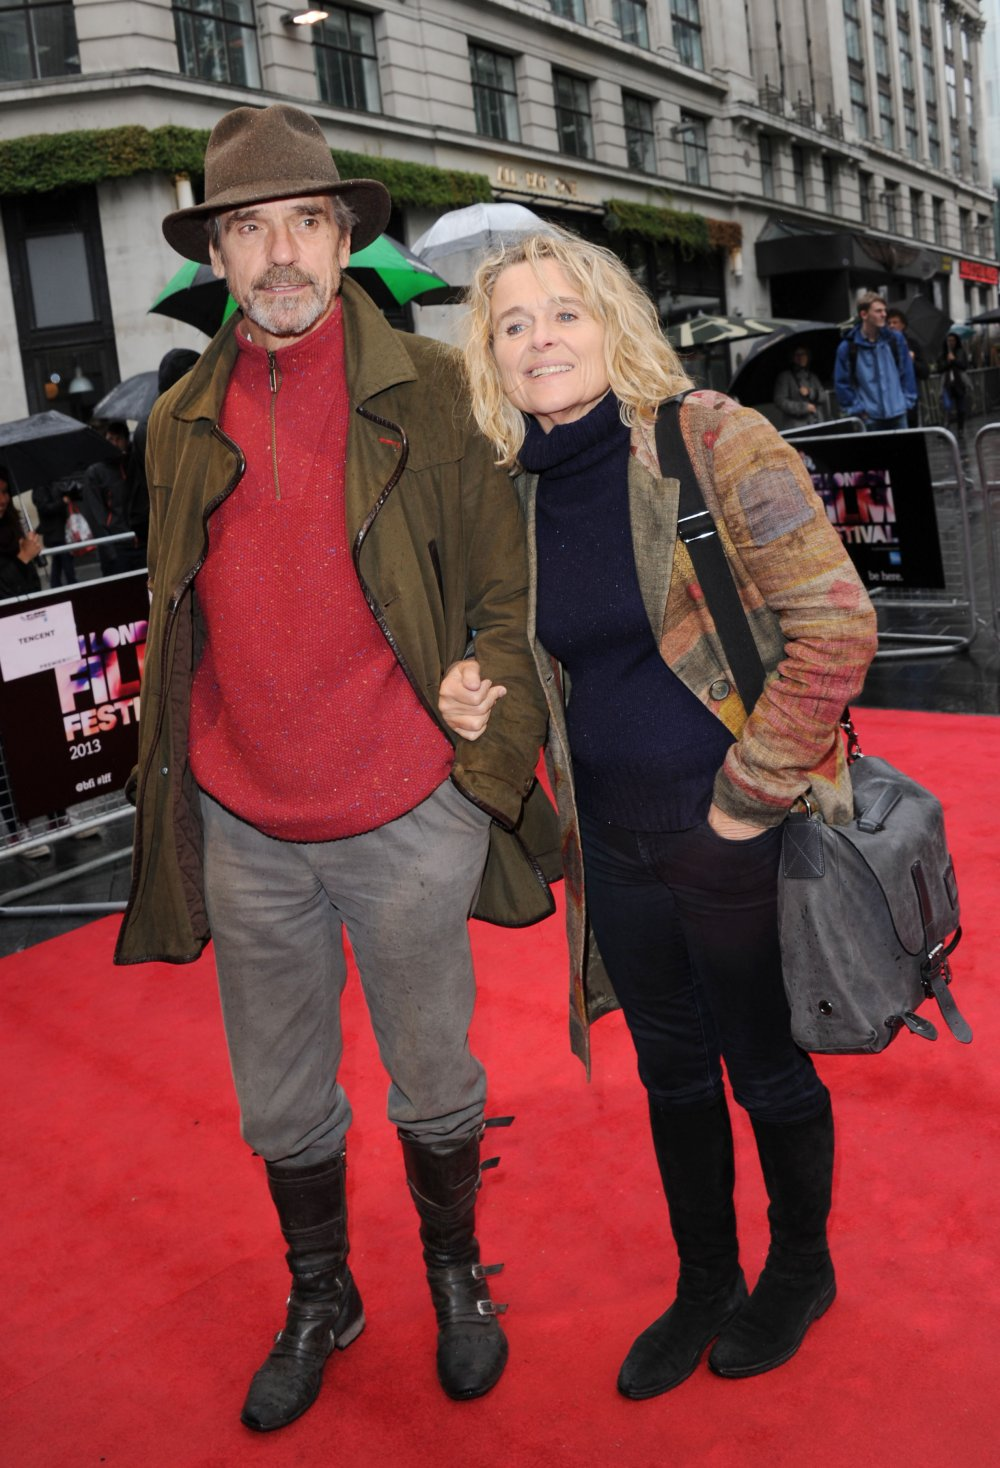 Jeremy Irons and Sinéad Cusack attend a screening of The Last Impresario (2013) at the 57th BFI London Film Festival at Odeon West End.